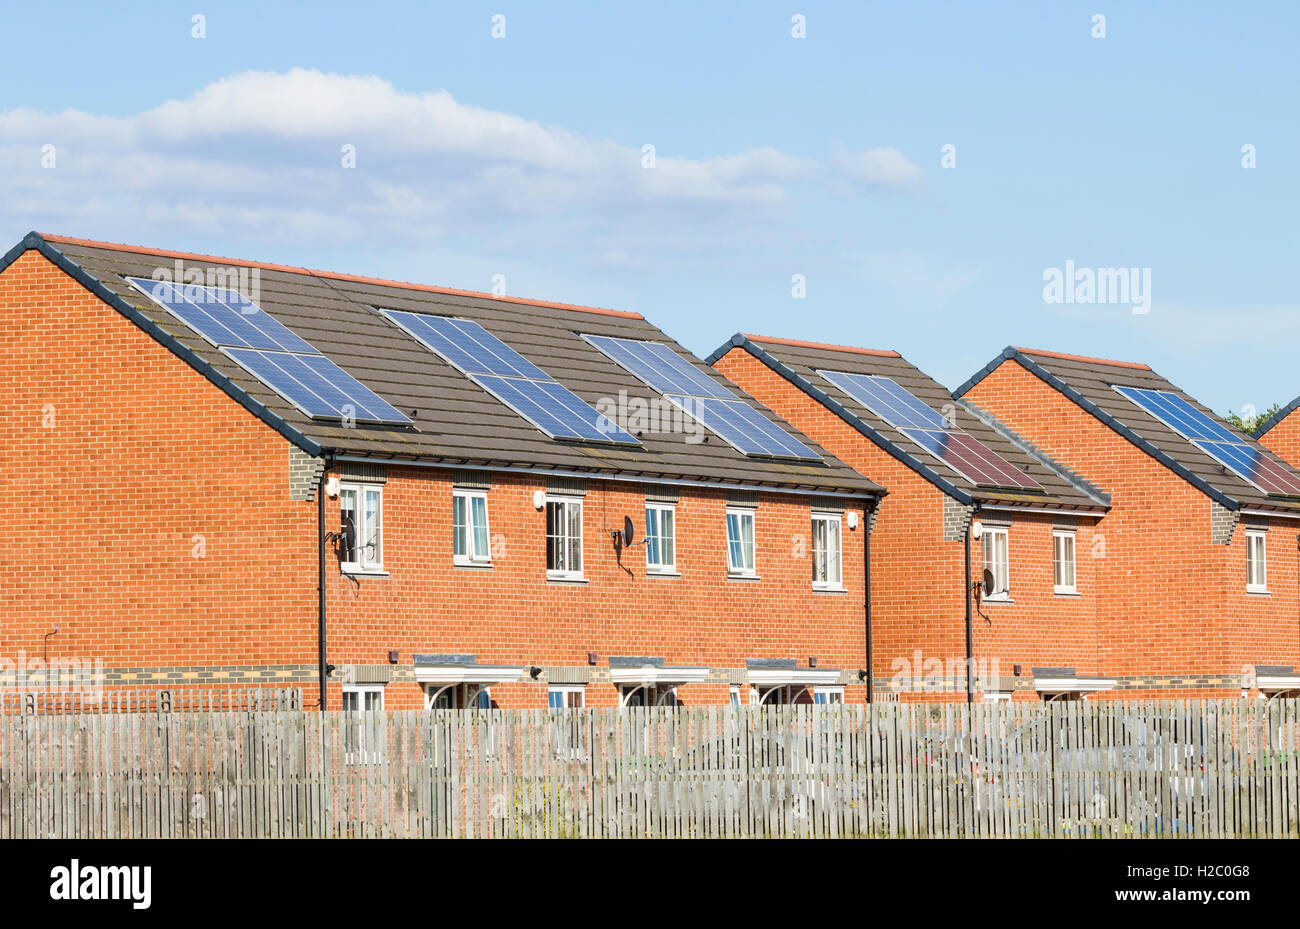 Solar panels on roofs of houses in England. UK - Stock Image